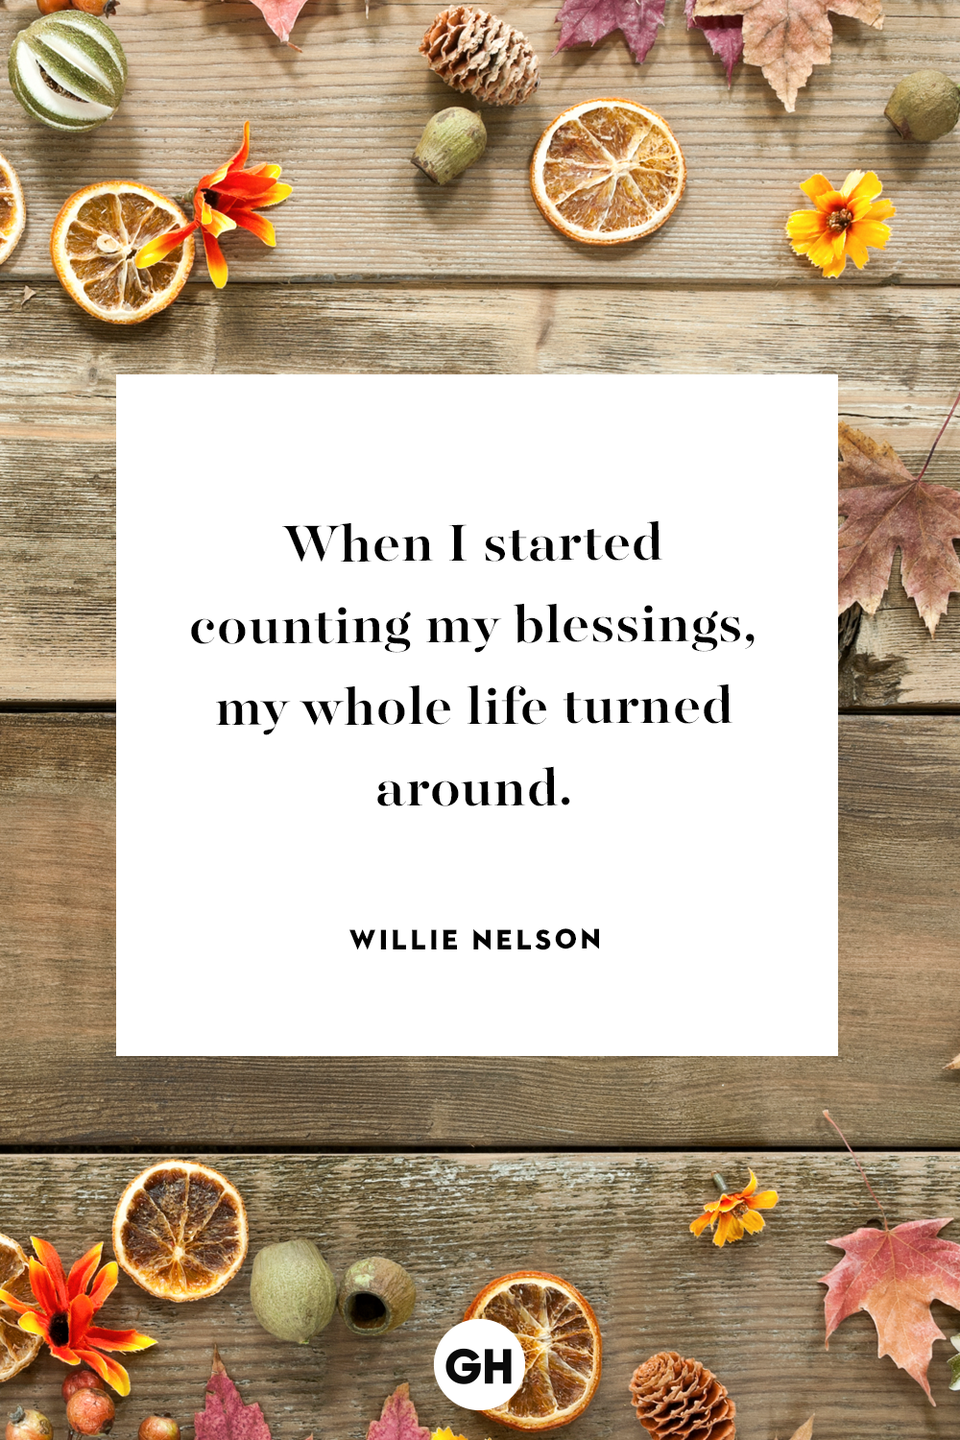 <p>When I started counting my blessings, my whole life turned around.</p>